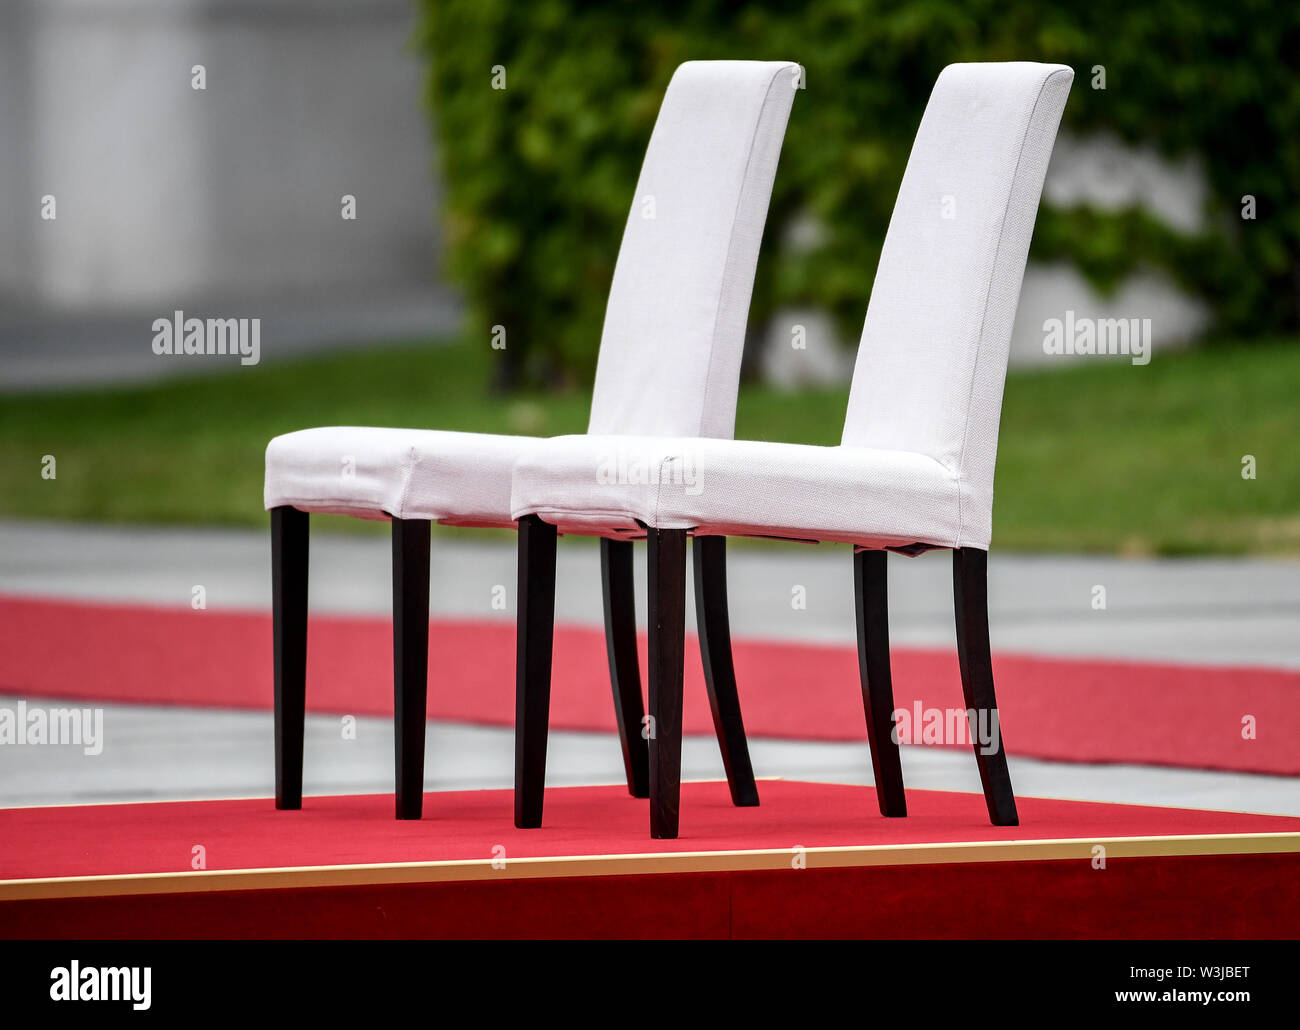 Berlin, Germany. 16th July, 2019. Chairs are available in the courtyard of honour of the Federal Chancellery, where Chancellor Merkel and the Prime Minister of Molda, Sandu, will watch the national anthems play. After several tremors during public appearances such as this, Merkel performed the ceremony for the first time last week, partly sitting down. Credit: Britta Pedersen/dpa-Zentralbild/dpa/Alamy Live News - Stock Image